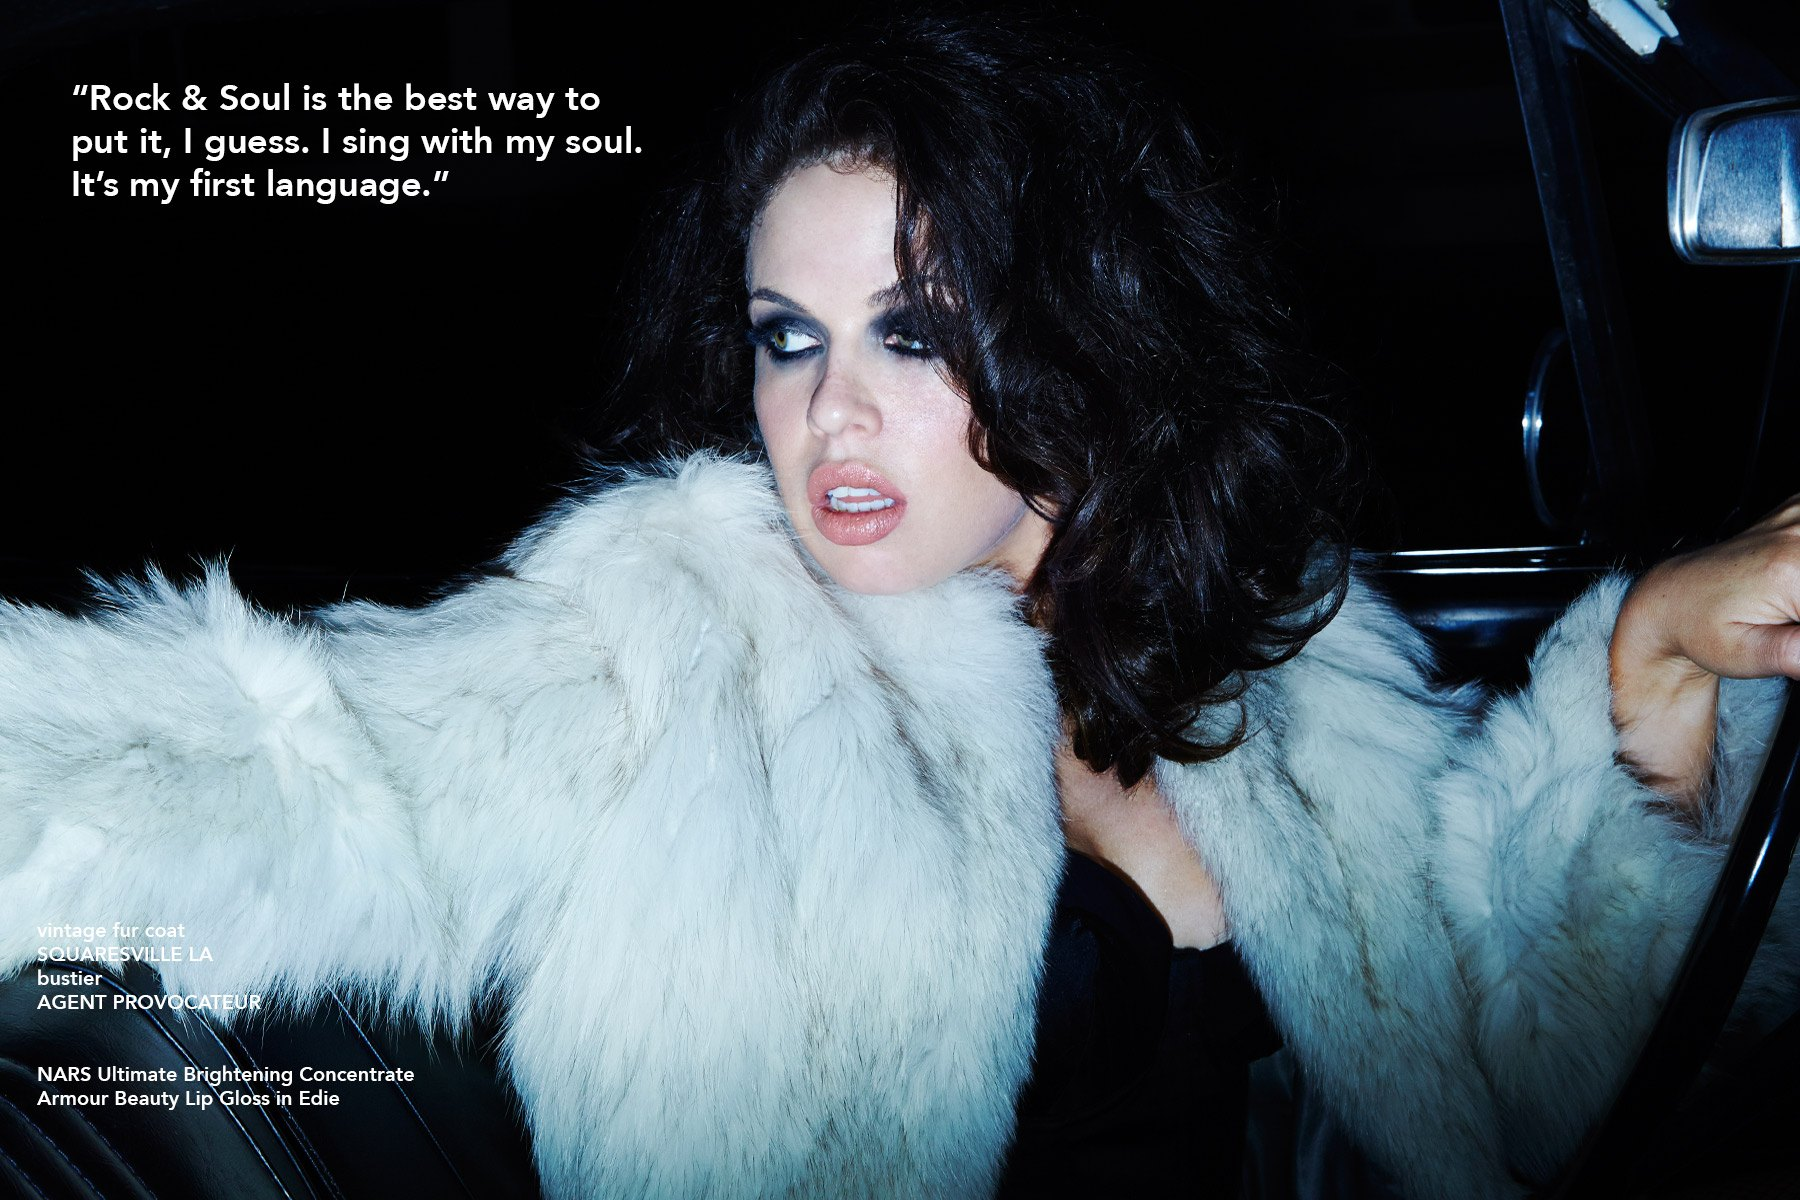 Musician Kelsy Karter photographed in a vintage fur coat from Squaresville, and bustier from Agent Provocateur. Photographed by Alexander Thompson for Ponyboy magazine NY.